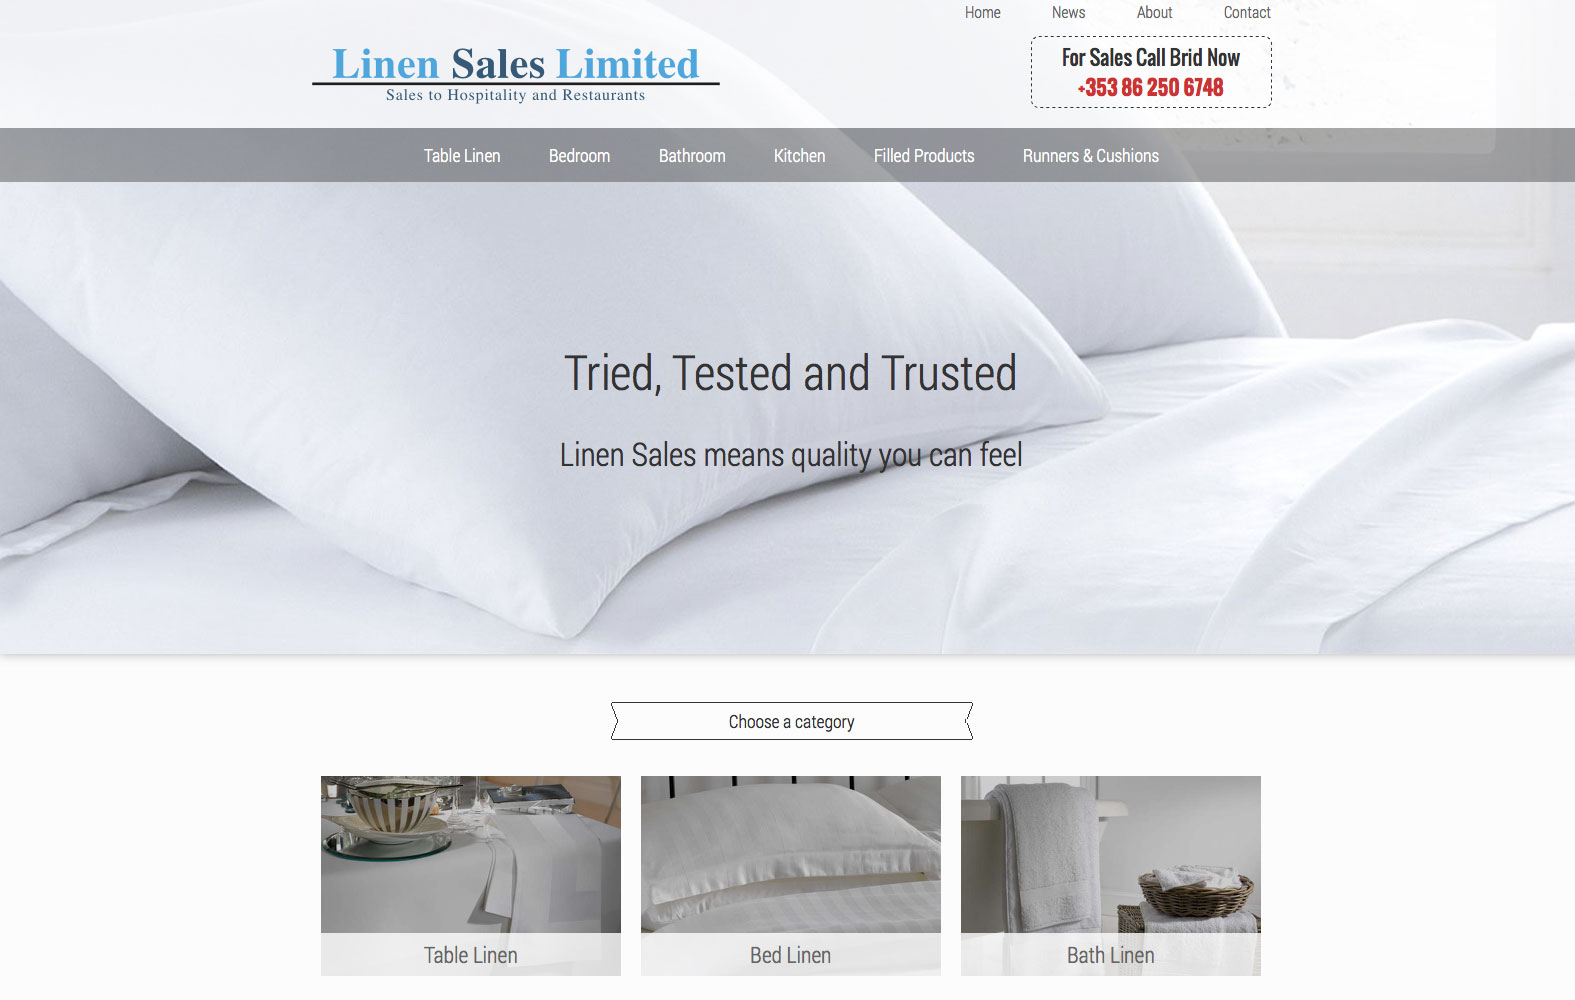 Linensales.ie website preview